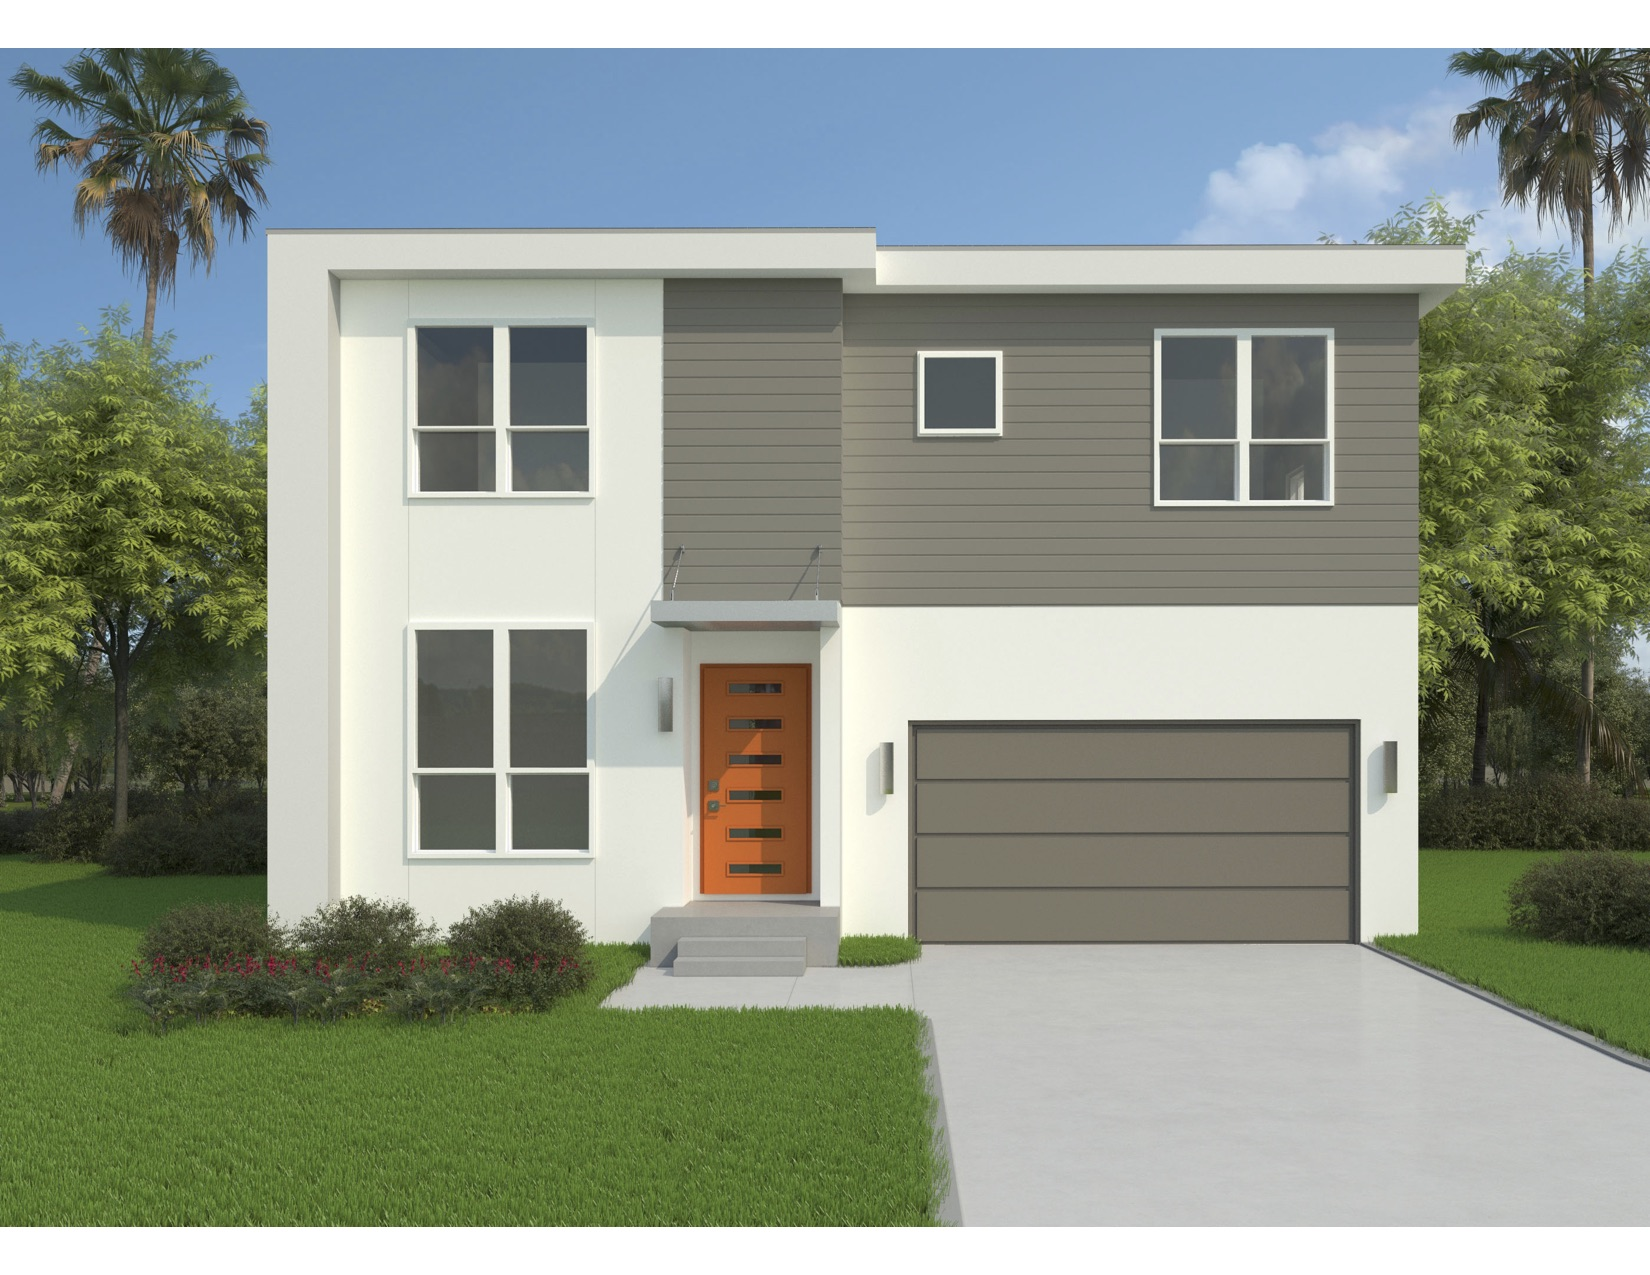 State street homes new home builder in south tampa and for Small home builders tampa